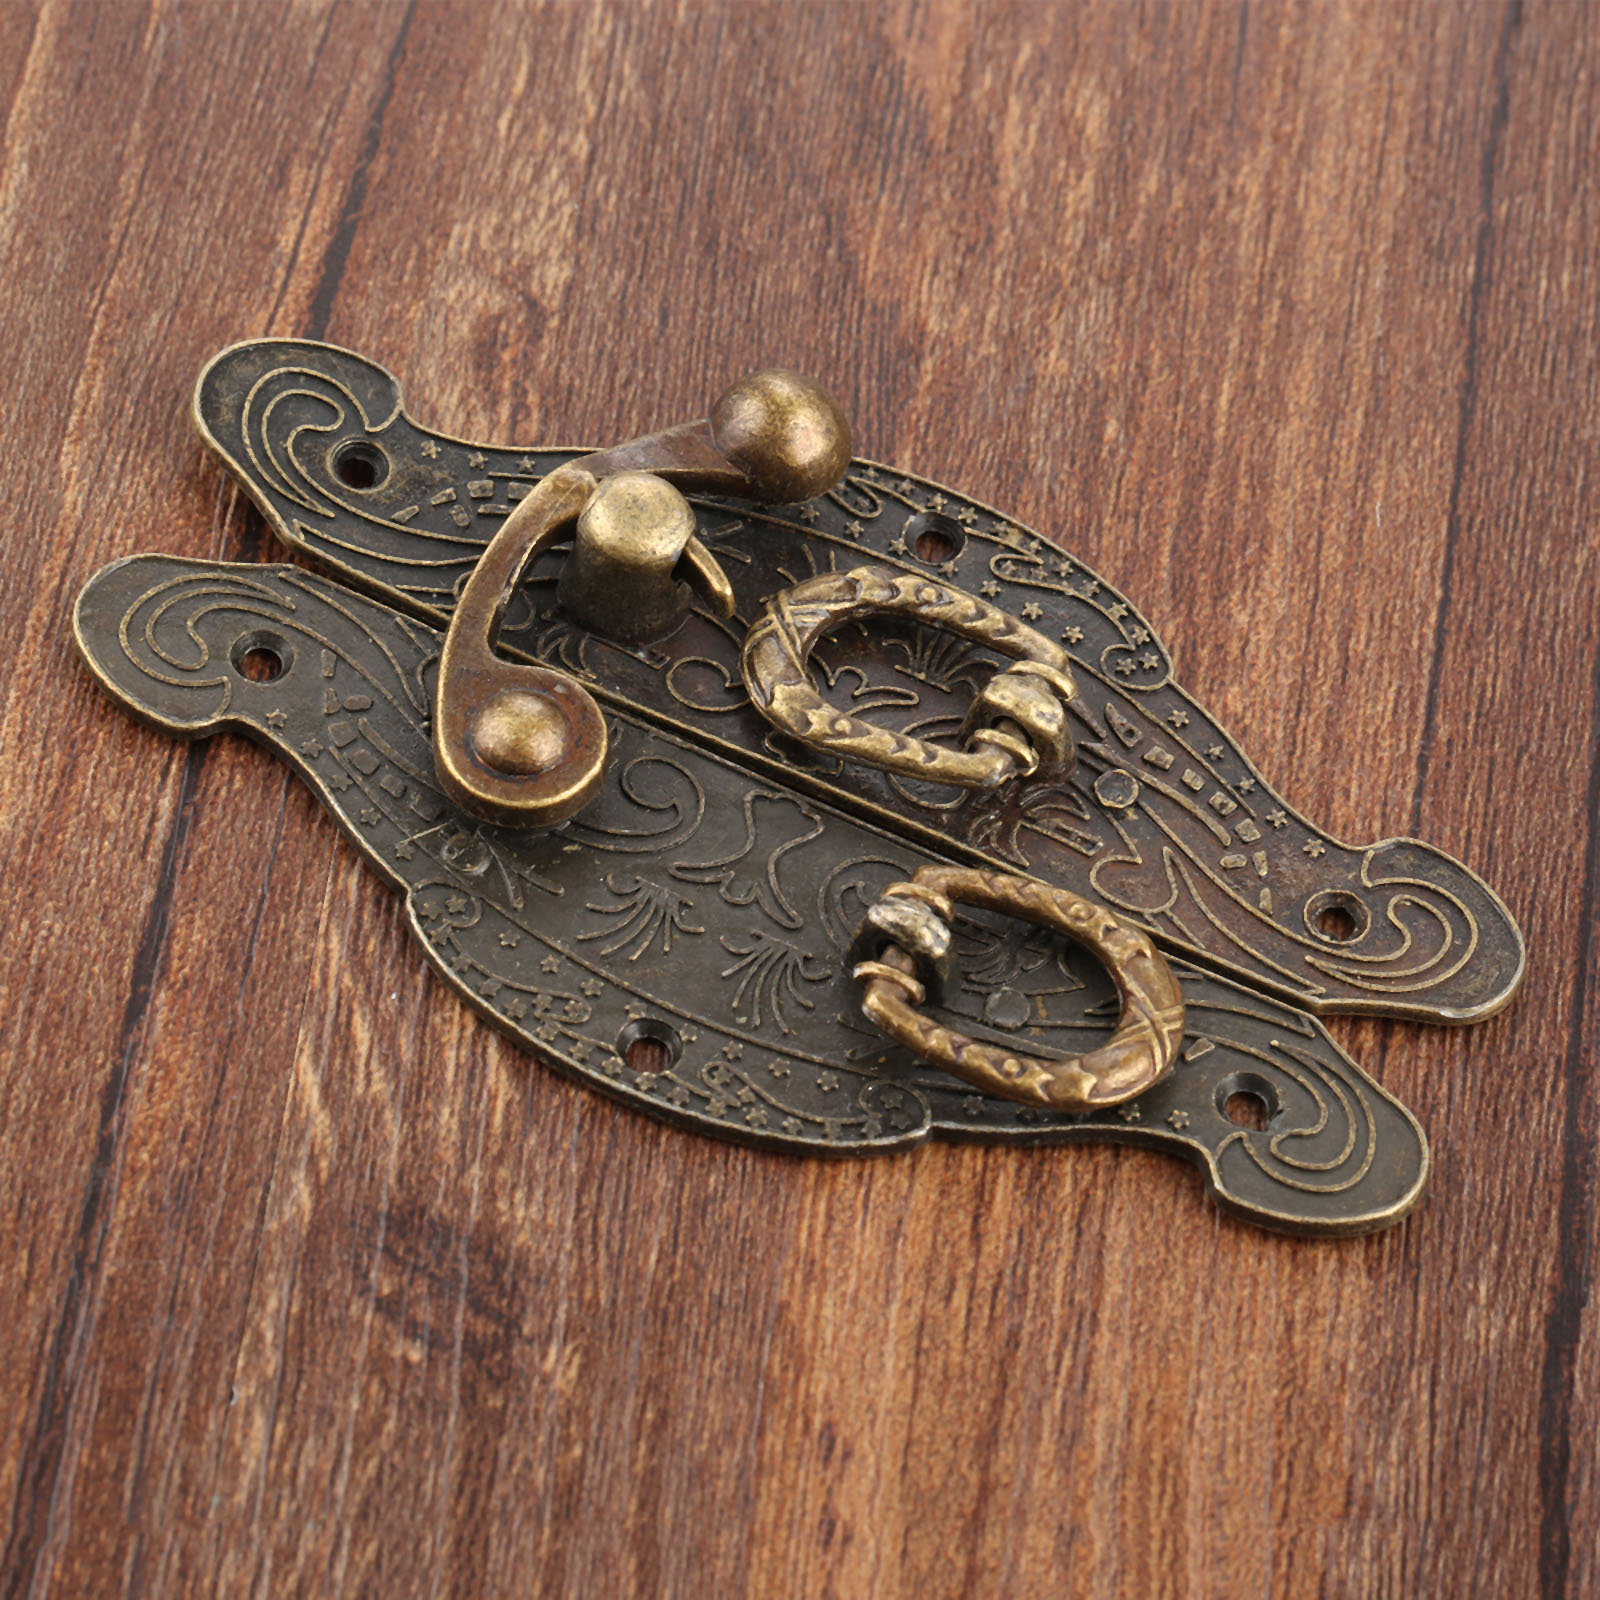 1PC Antique Box Latch Hasp Vintage Wooden Gift Box Toggle Lock Alloy Buckle Latch Hook Furniture Hardware Zinc Alloy 90*50mm